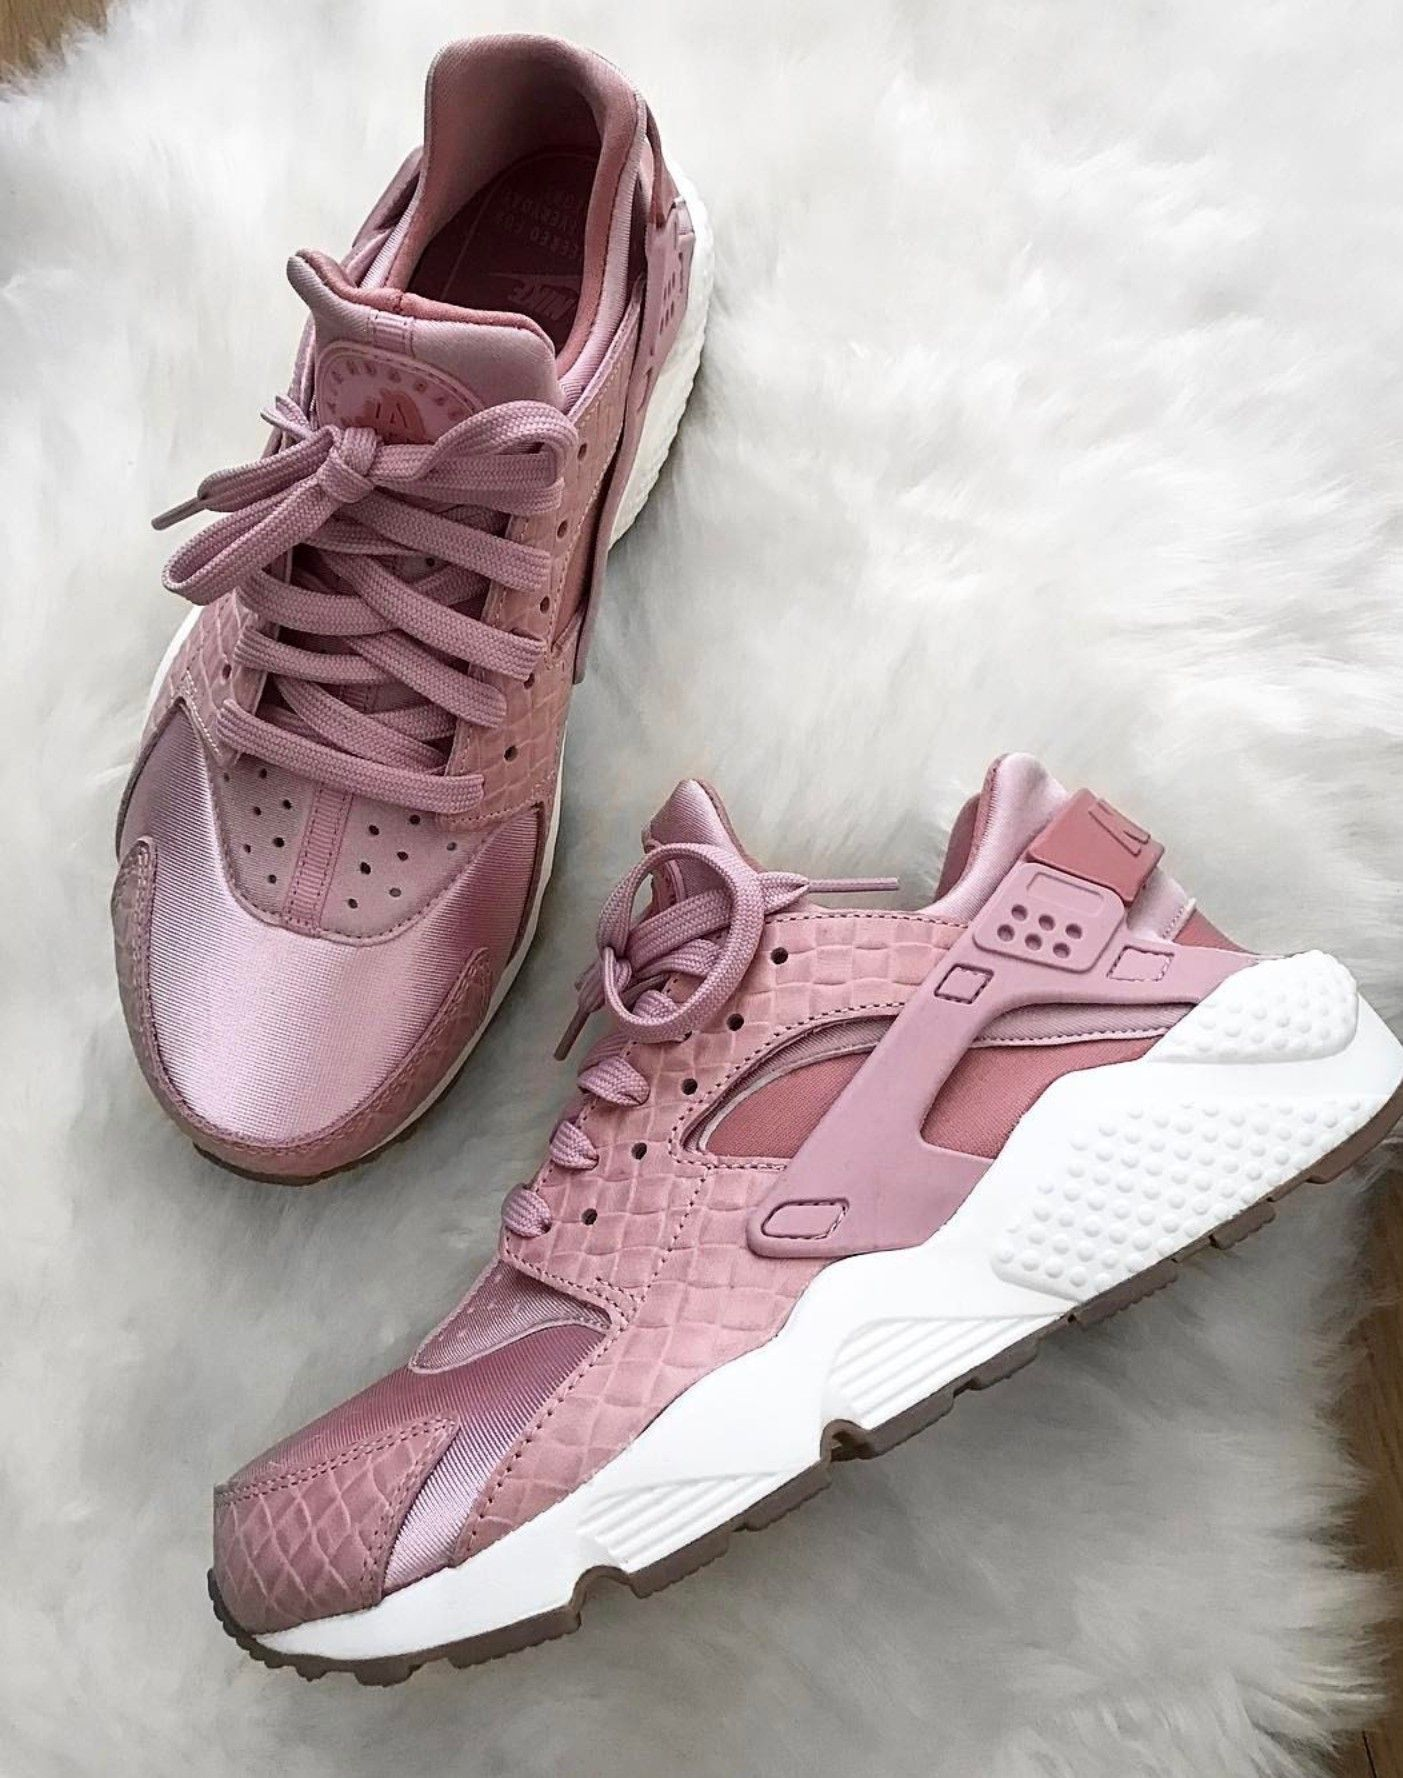 best service 51d98 7615c Nike Huarache in rosa Foto fashionthingsbylisa Instagram